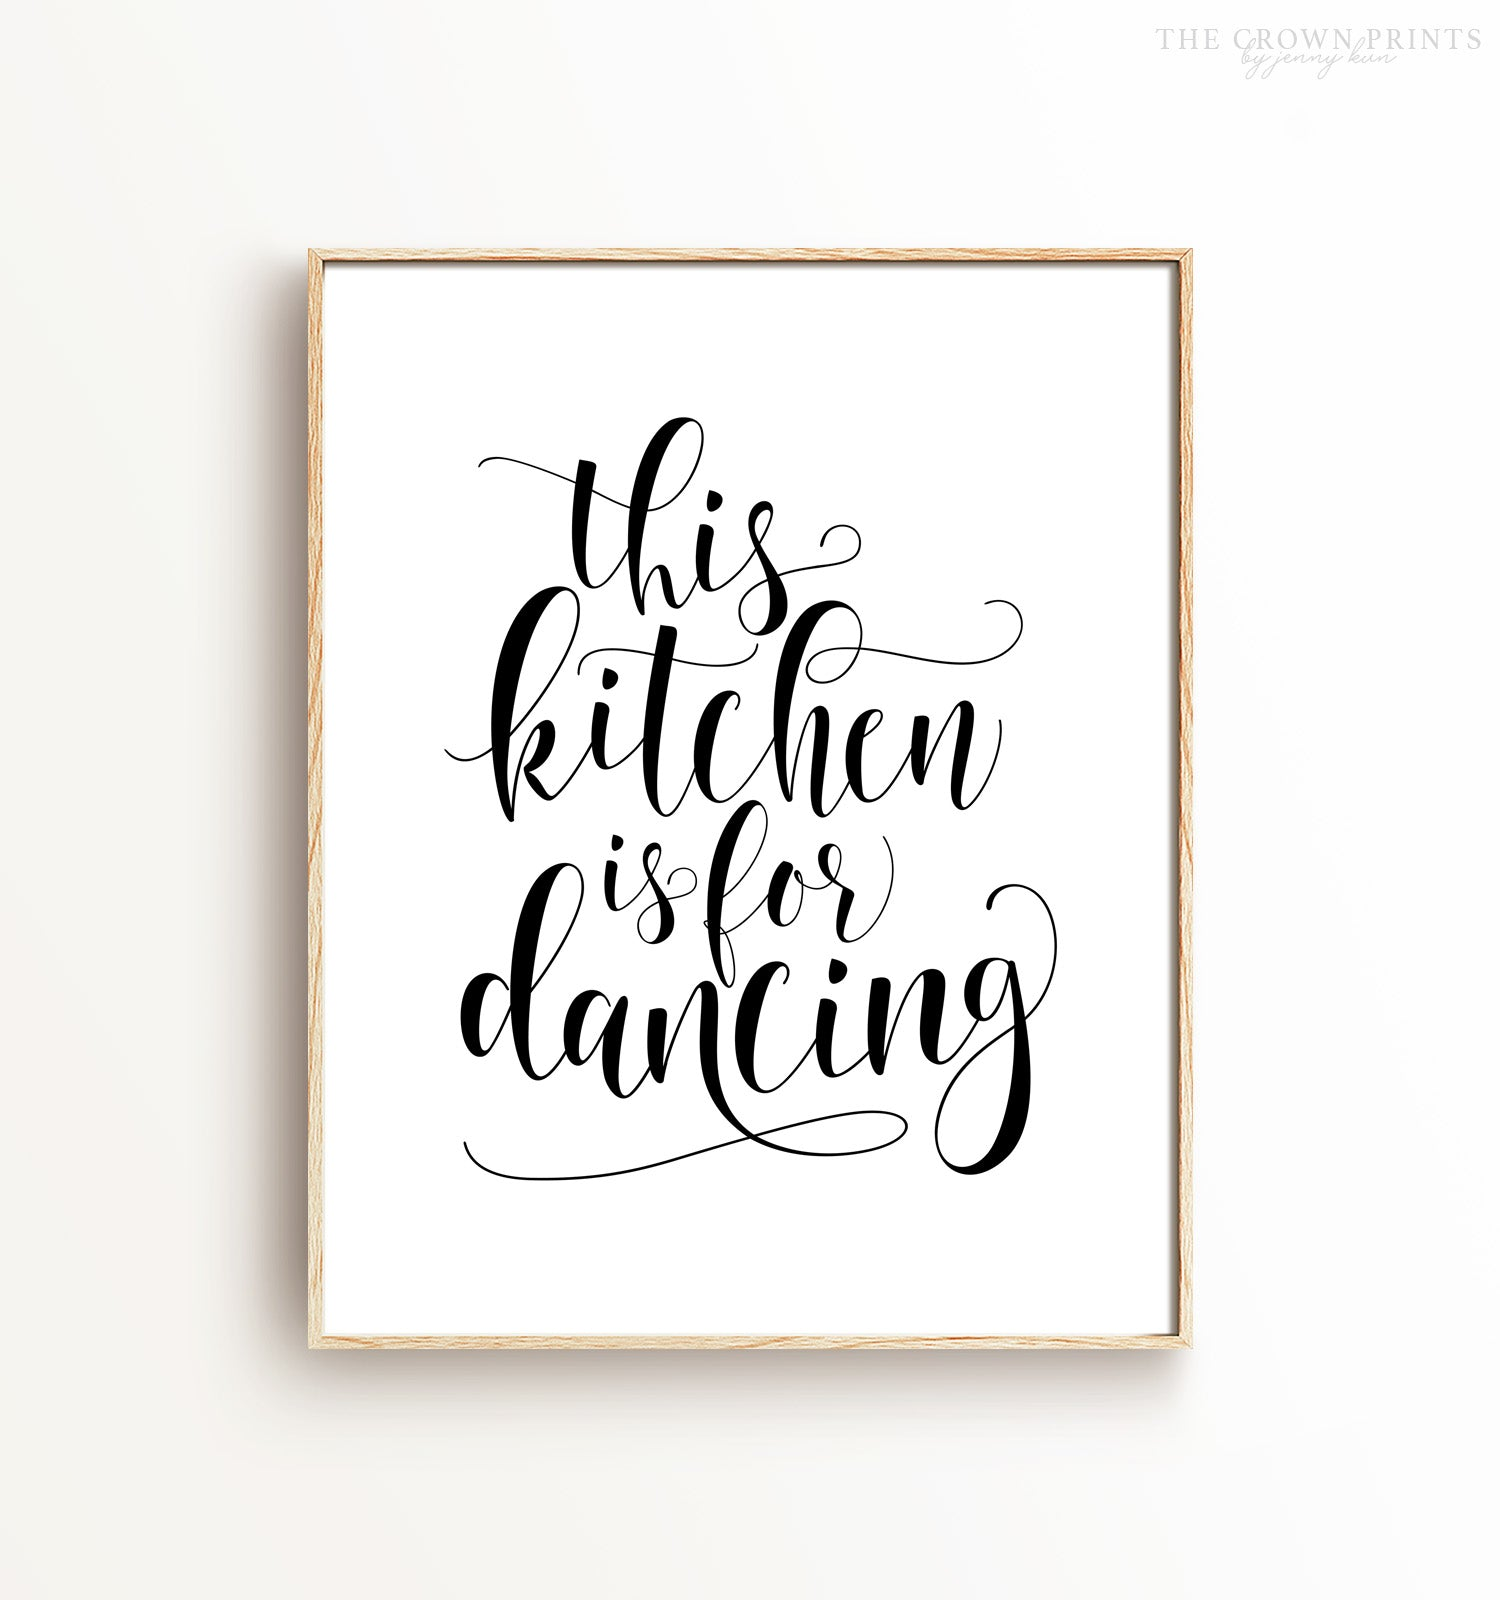 graphic relating to Printable Artwork named This kitchen area is for dancing Printable Artwork